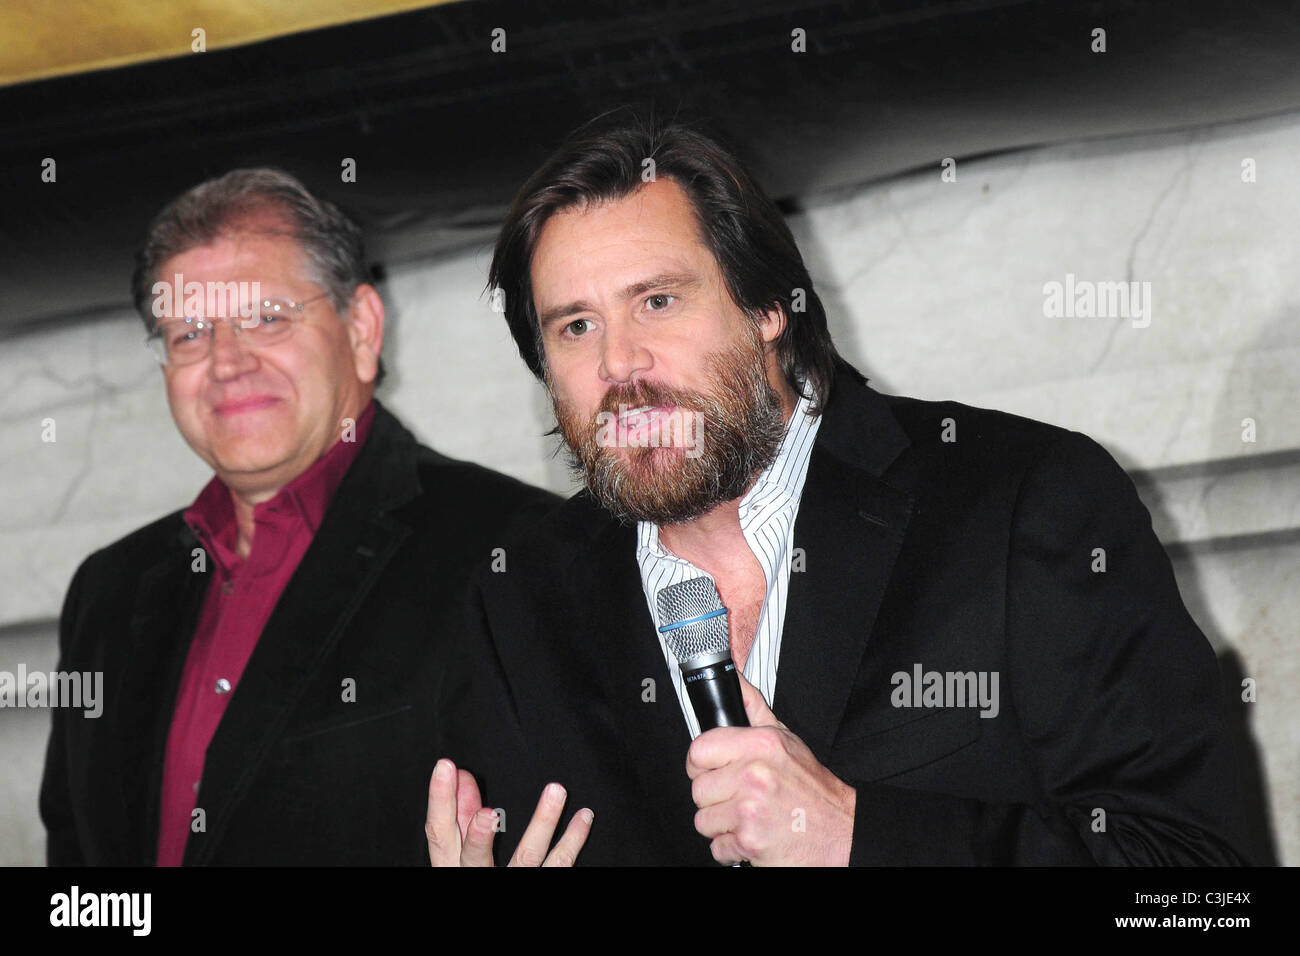 A Christmas Carol Nyc.Robert Zemeckis And Jim Carrey Disney S A Christmas Carol